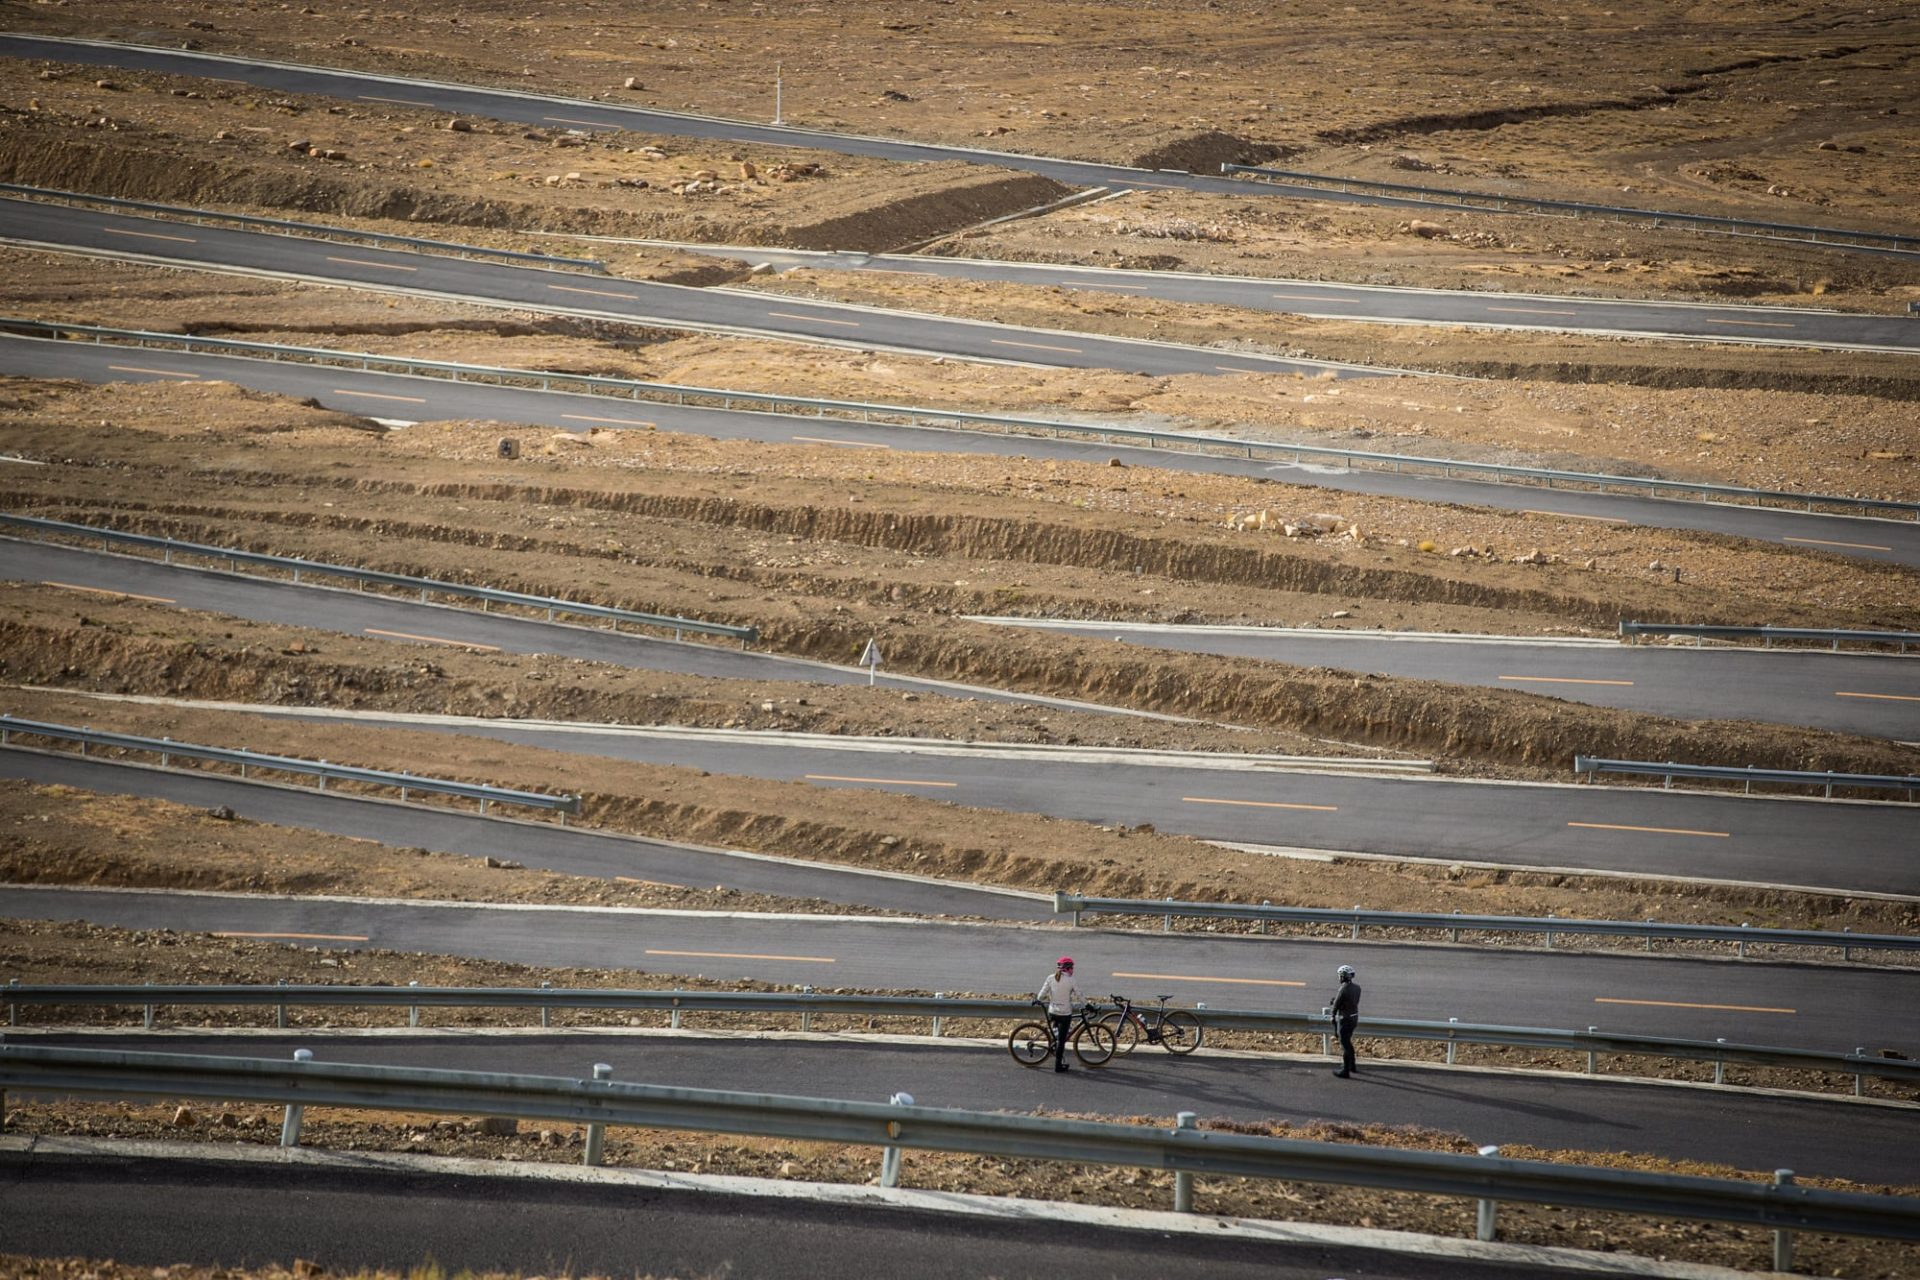 Not many people know that Escher designed the highways in Tibet...